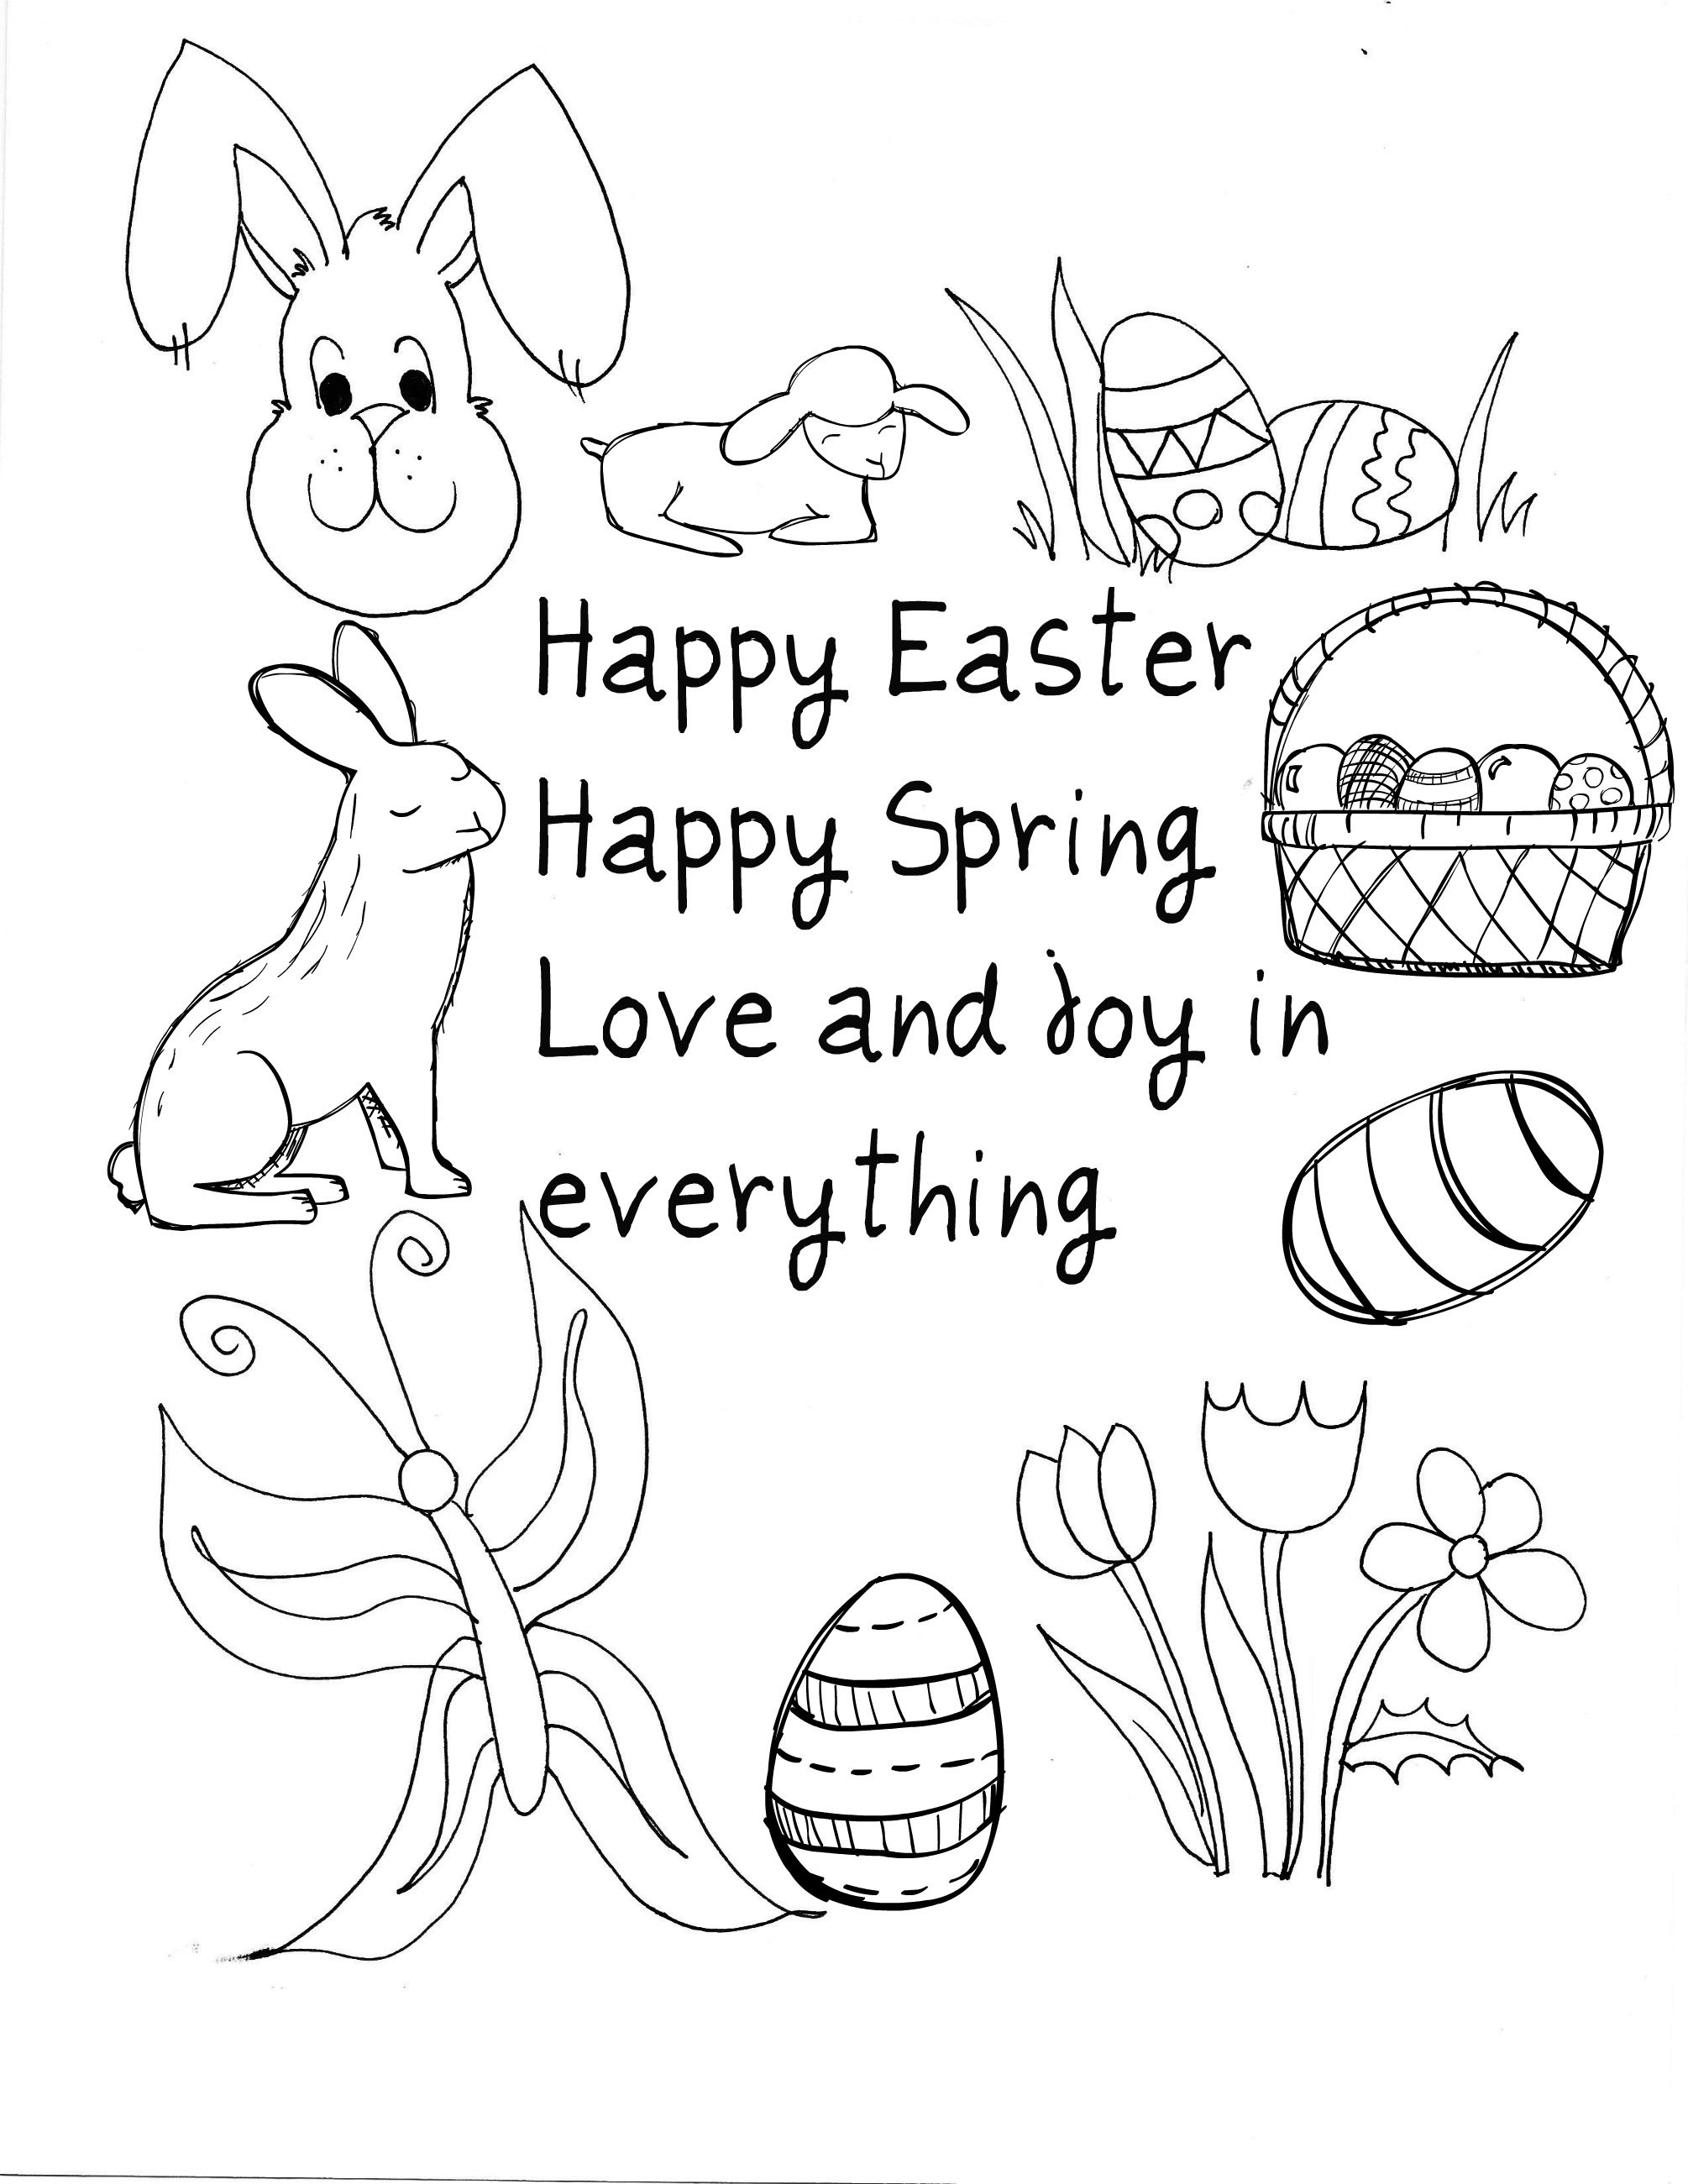 10 Easter Printable Cards To Color. I just clicked on the